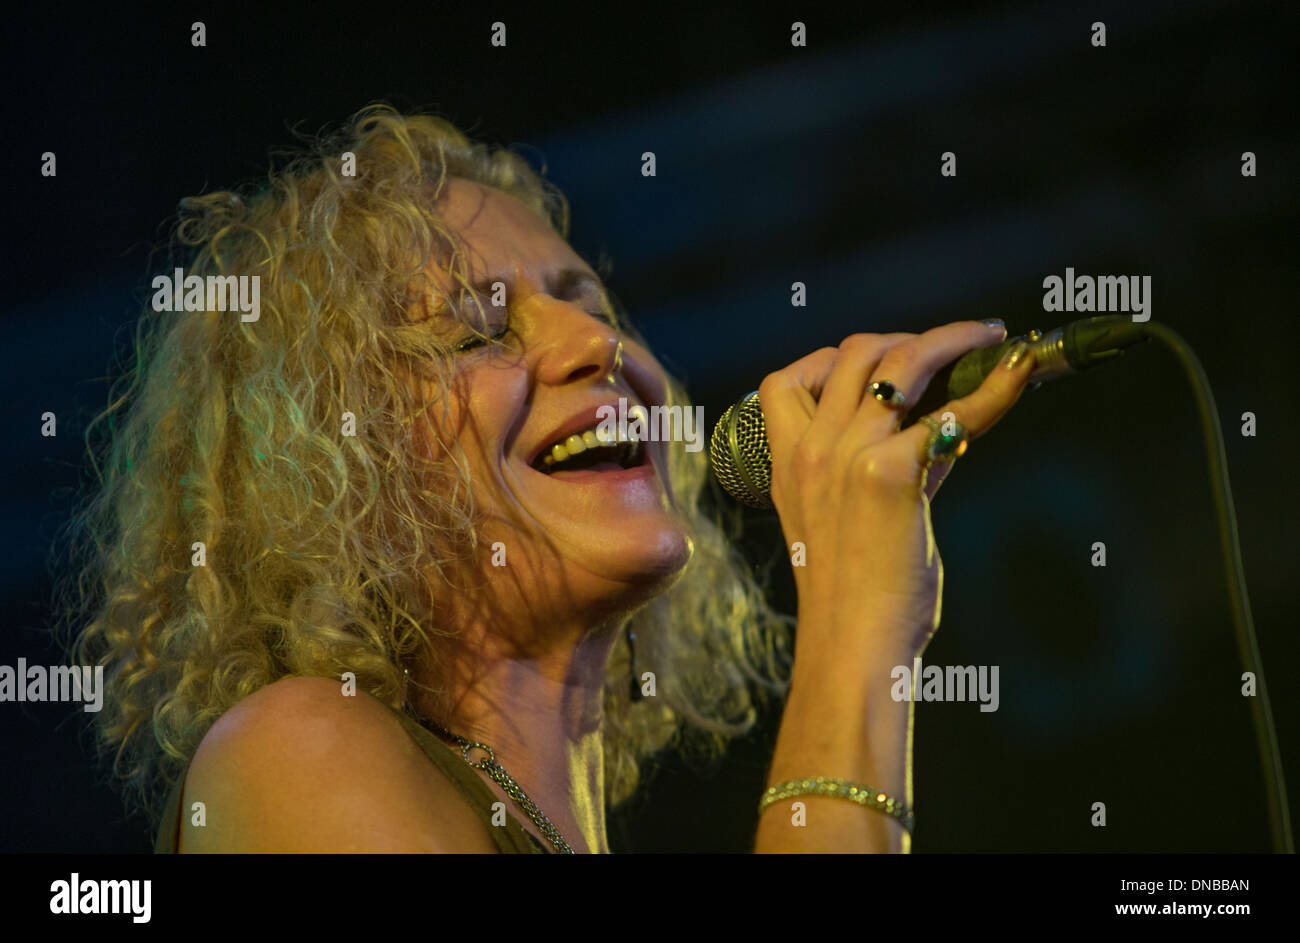 Zoe Schwarz with Blue Commotion at the 2013 Tenby Blues Festival, Wales UK - Stock Image